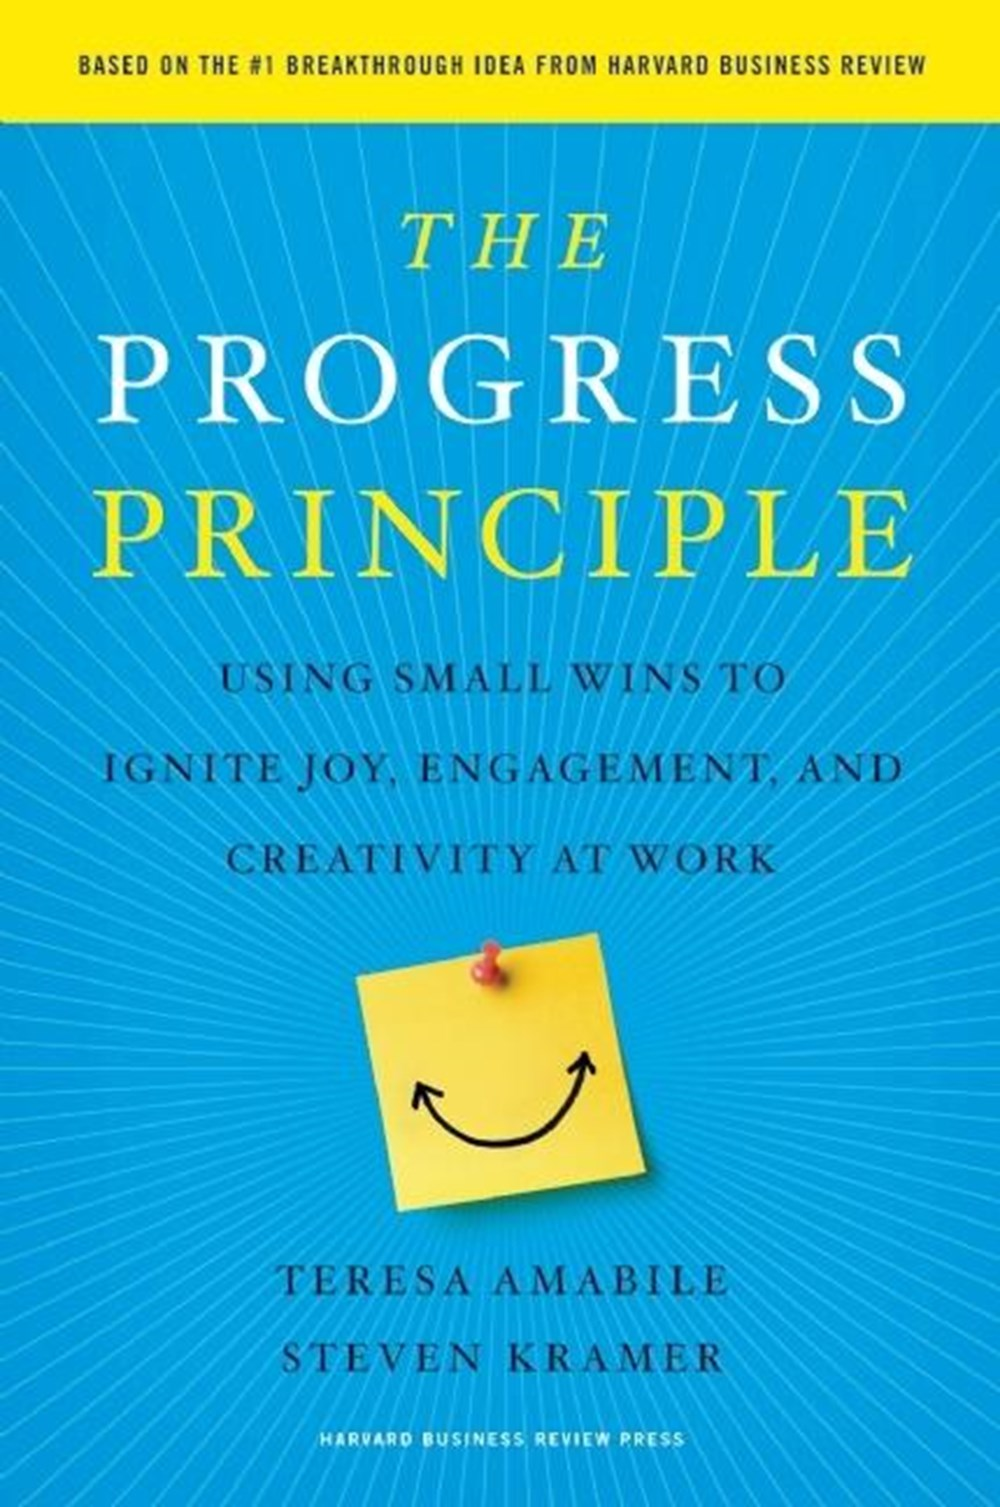 Progress Principle Using Small Wins to Ignite Joy, Engagement, and Creativity at Work